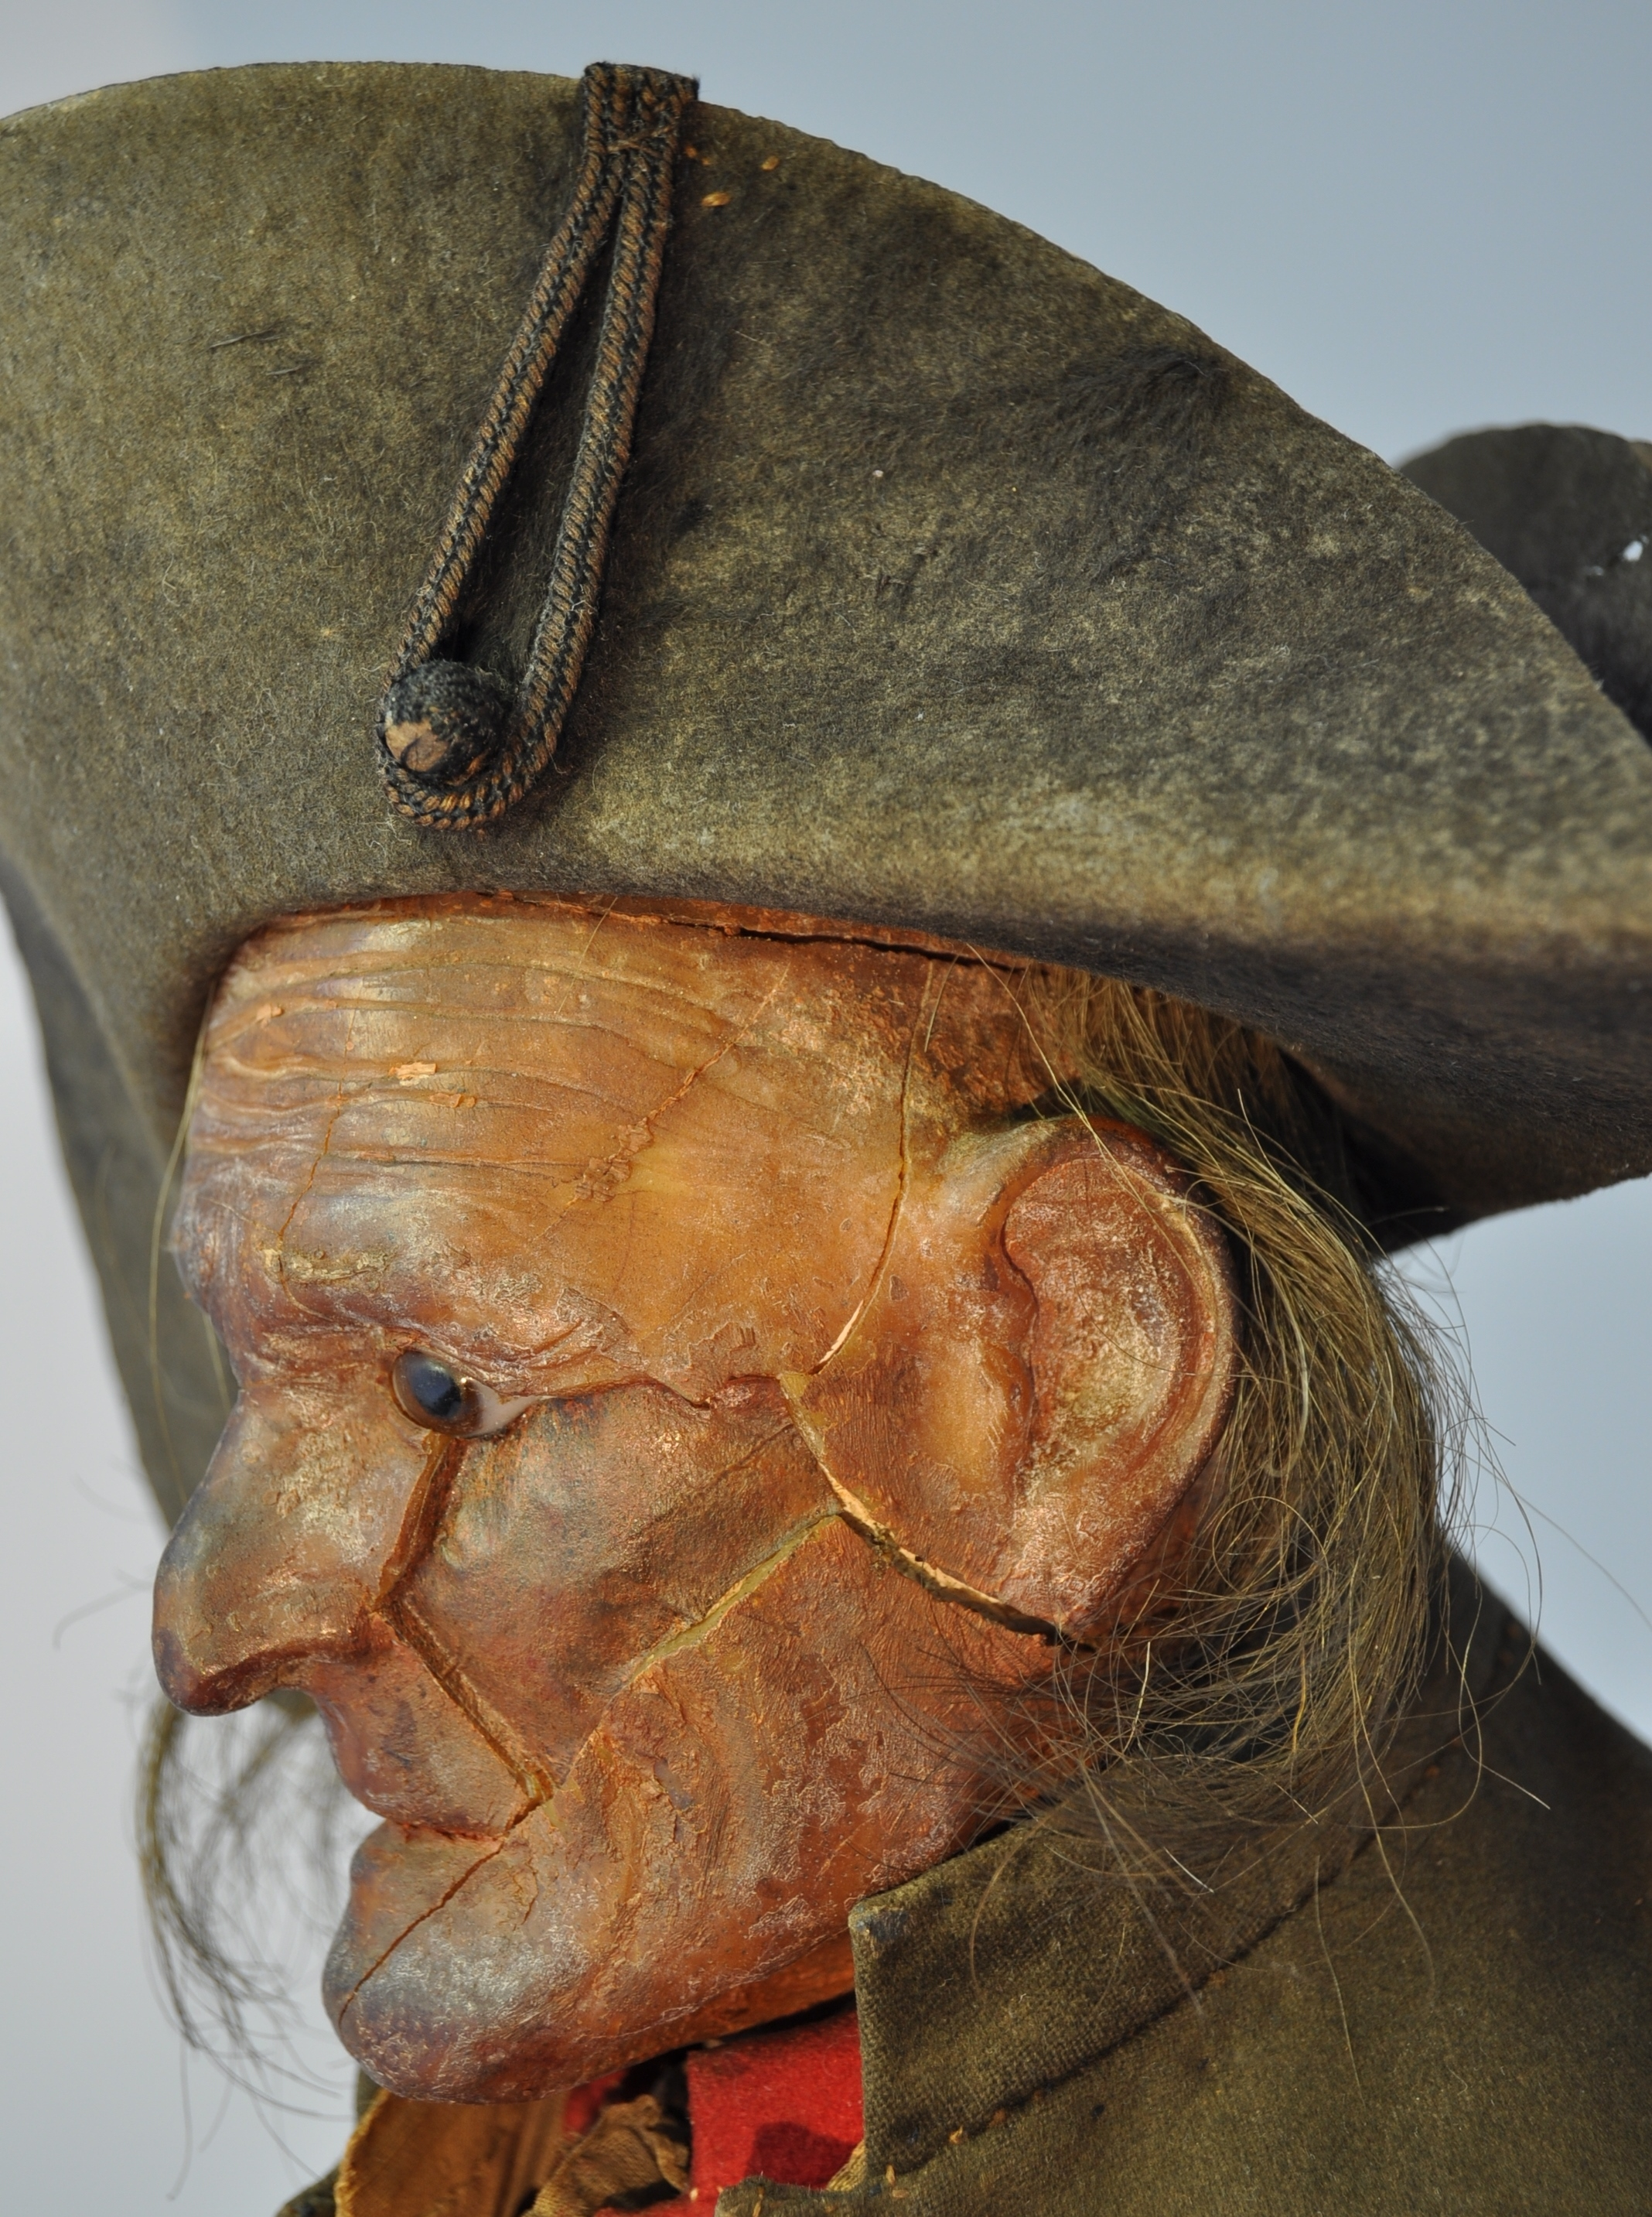 Detail of the head and hat, after conservation treatment